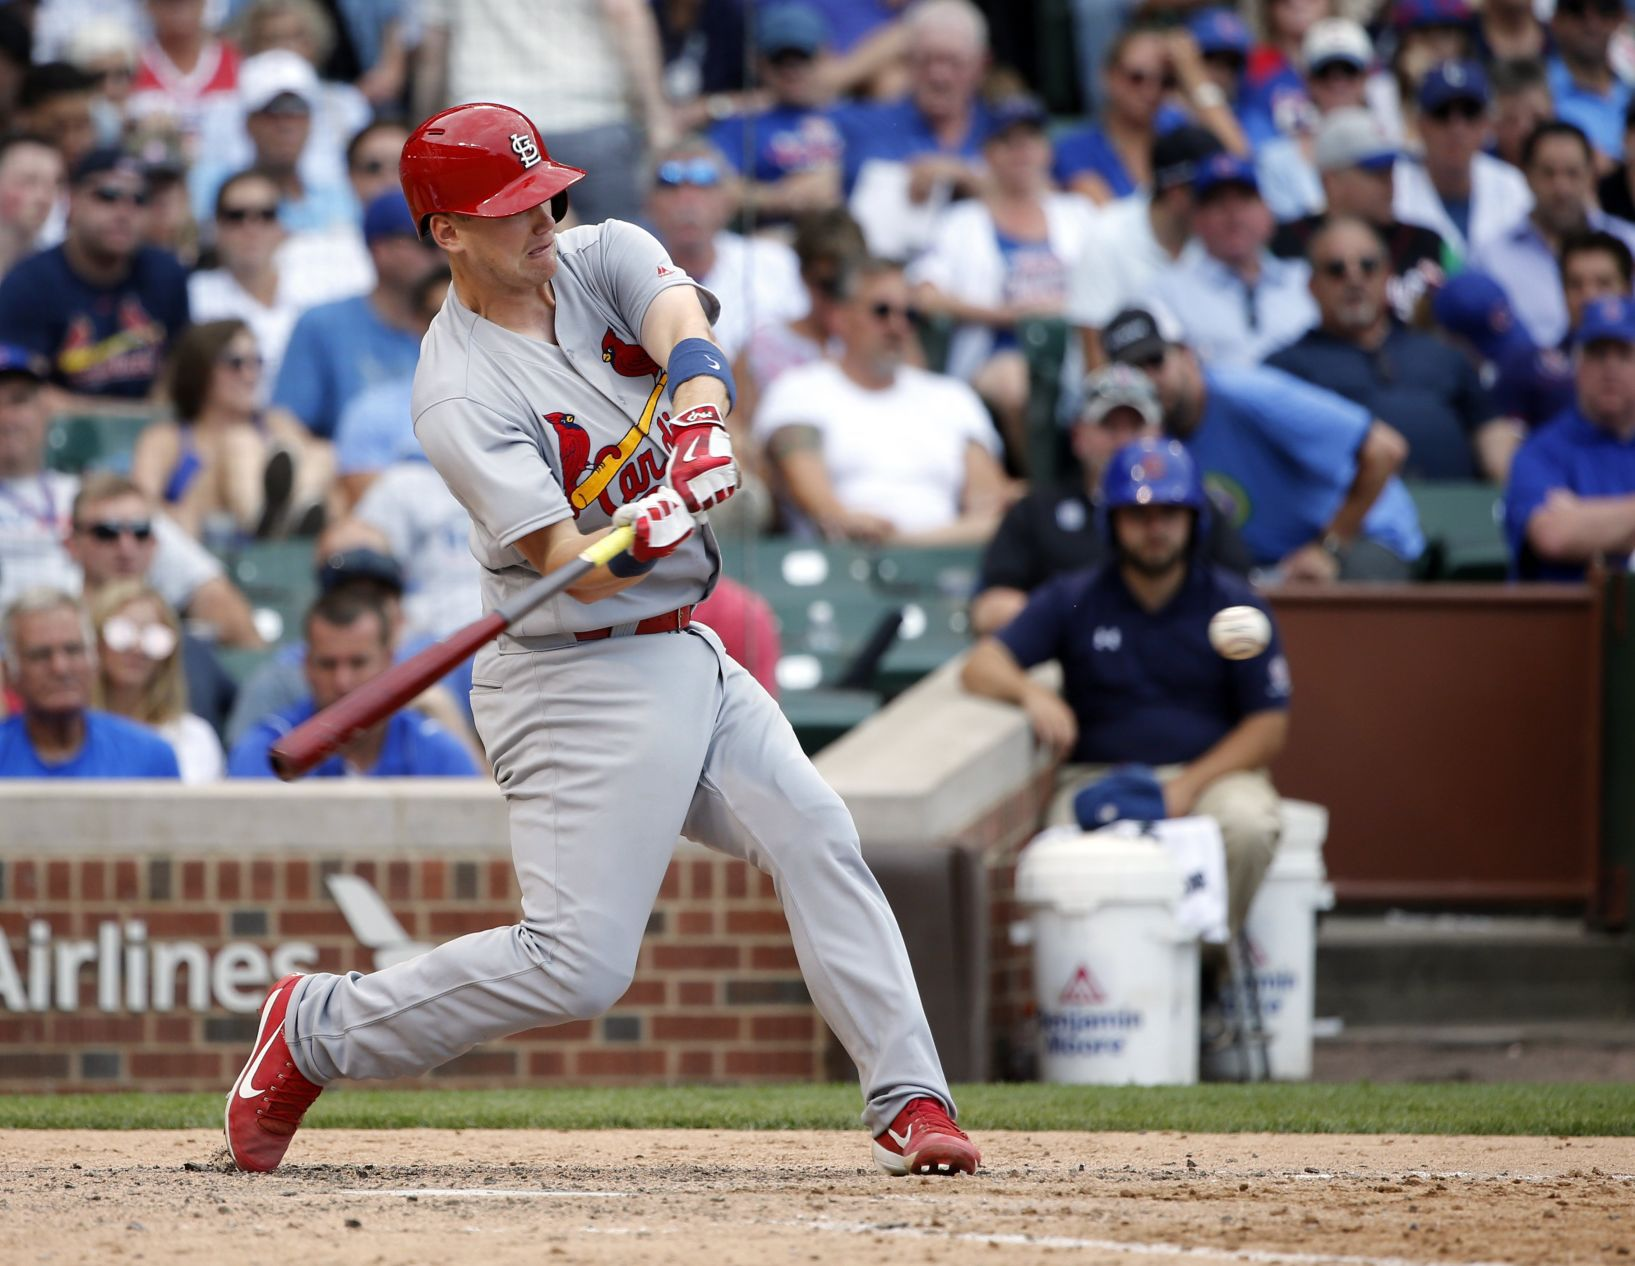 Yadier Molina Called Out Cardinals Manager Mike Matheny on Instagram